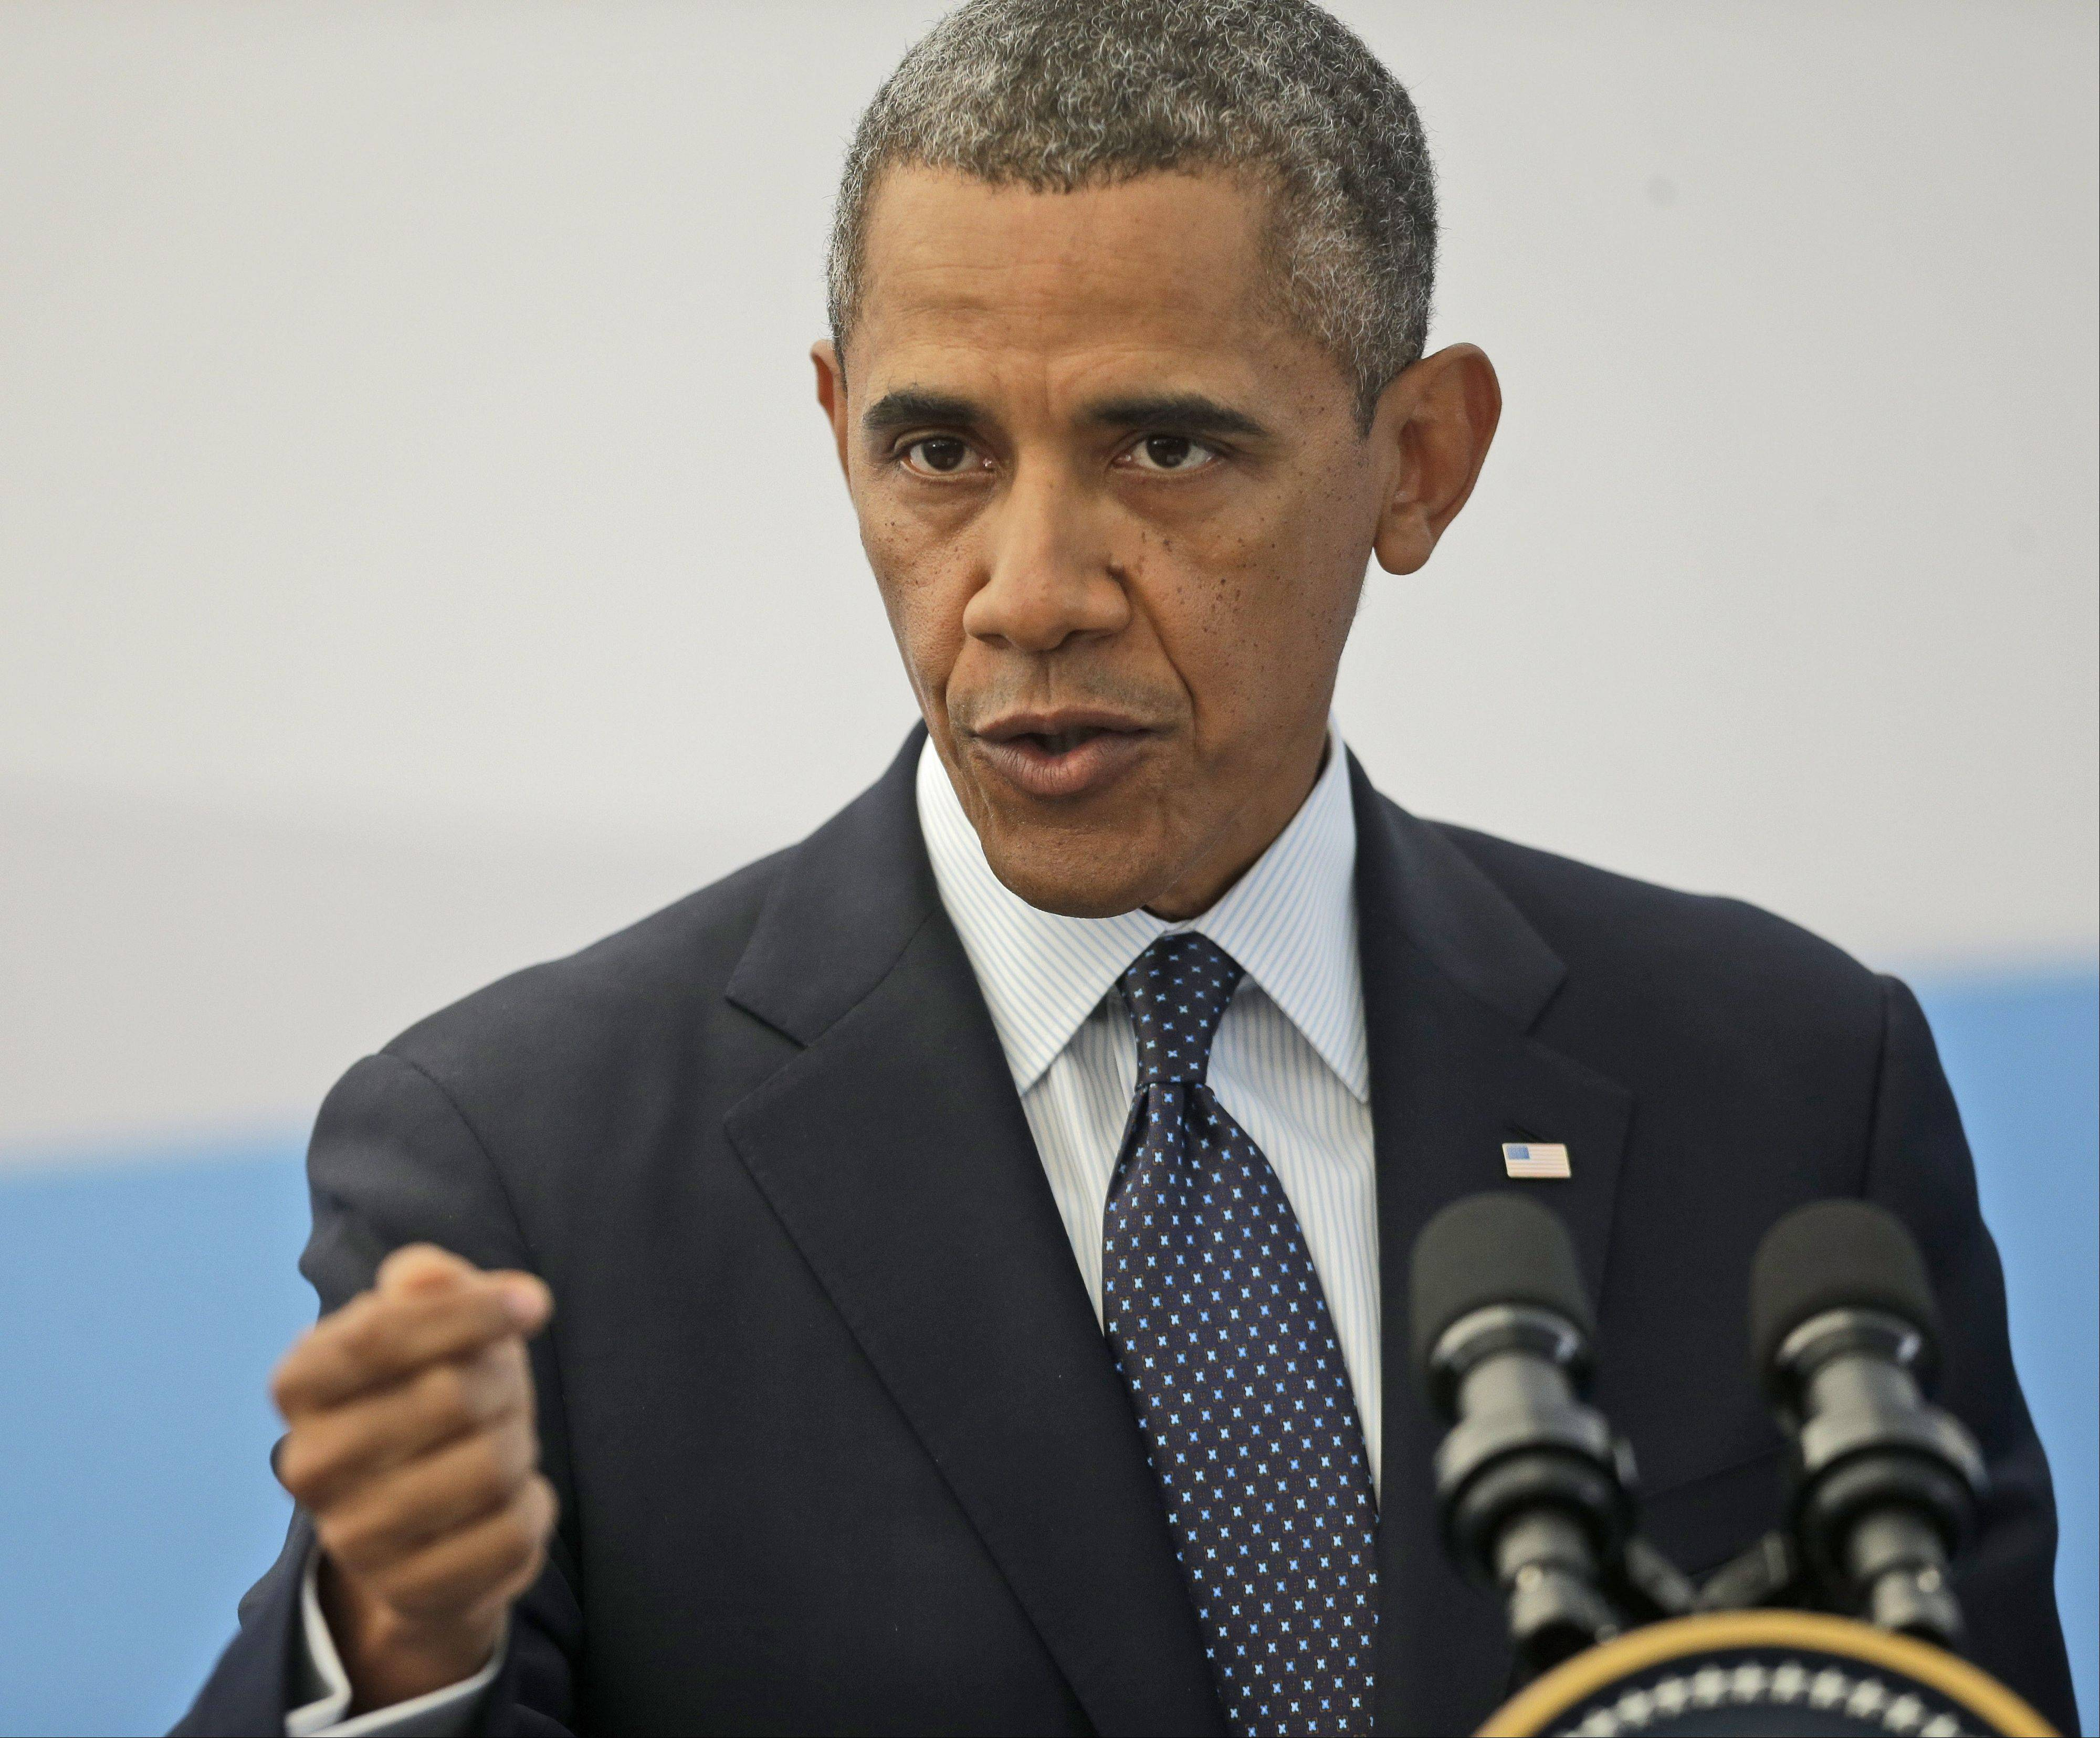 Obama notes split over Syria attack, plans speech